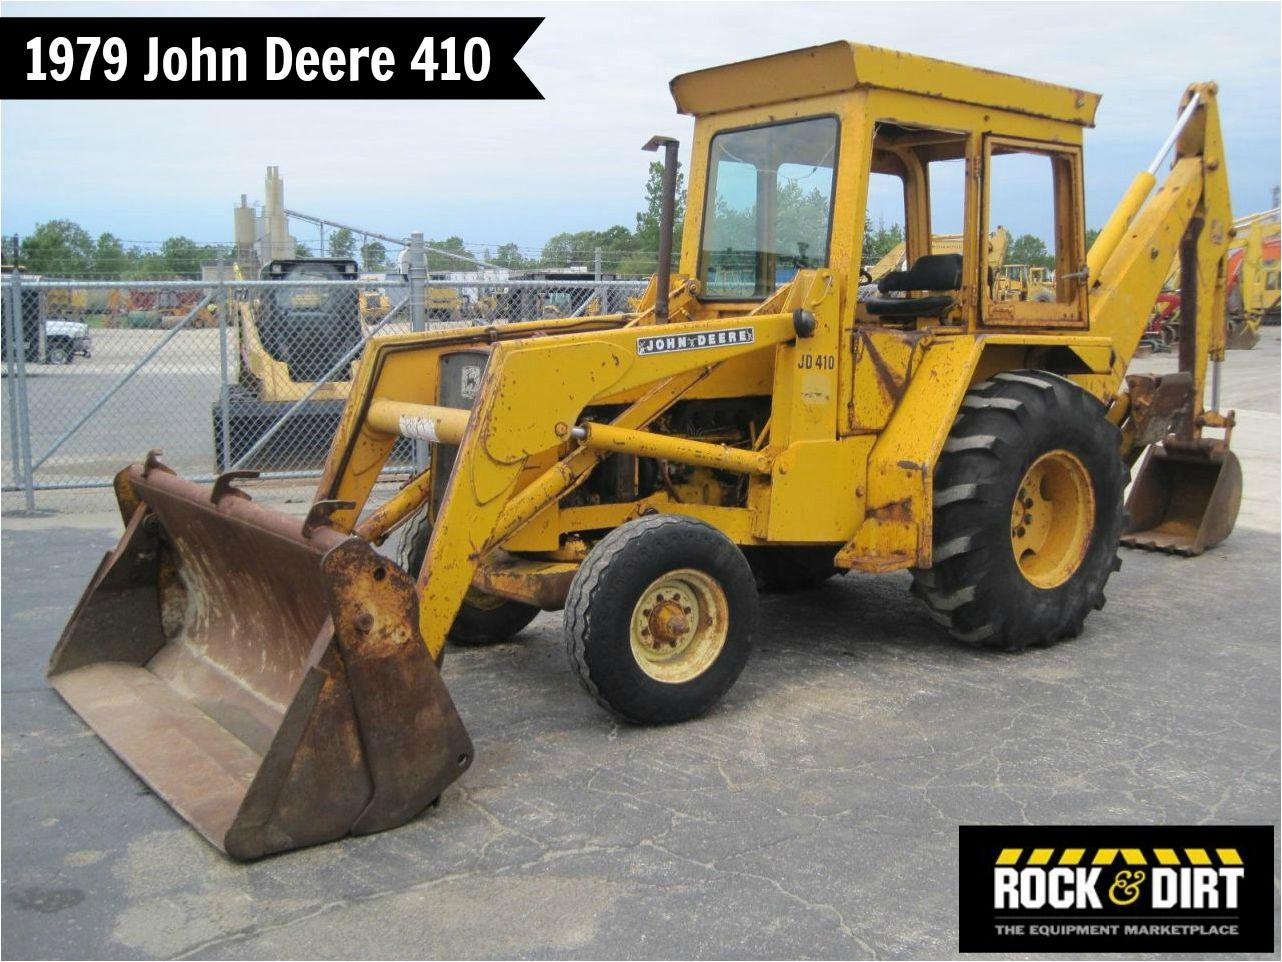 ThrowbackThursday Check out this 1979 John Deere 410